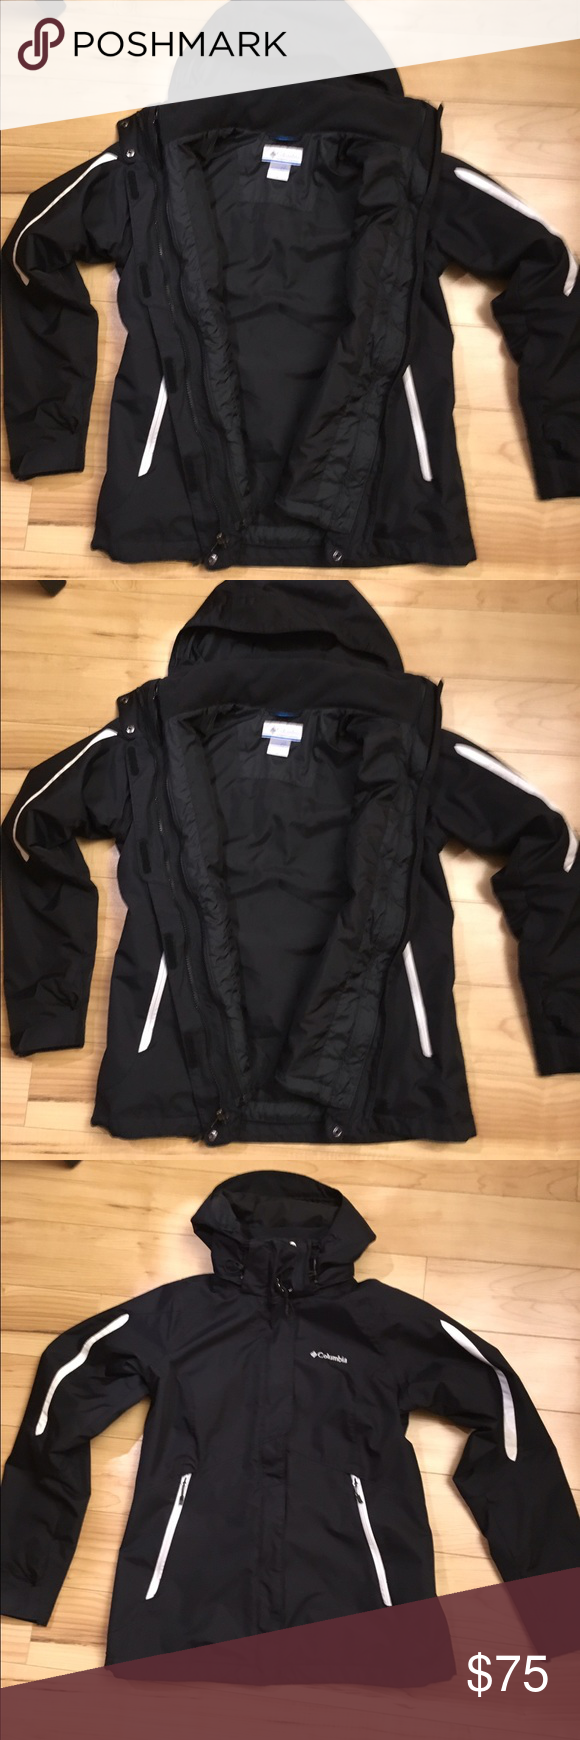 Colombia detachable Jacket Black Colombia detachable jacket. Nicely taken care of. No stains, rips or tears. Columbia Jackets & Coats